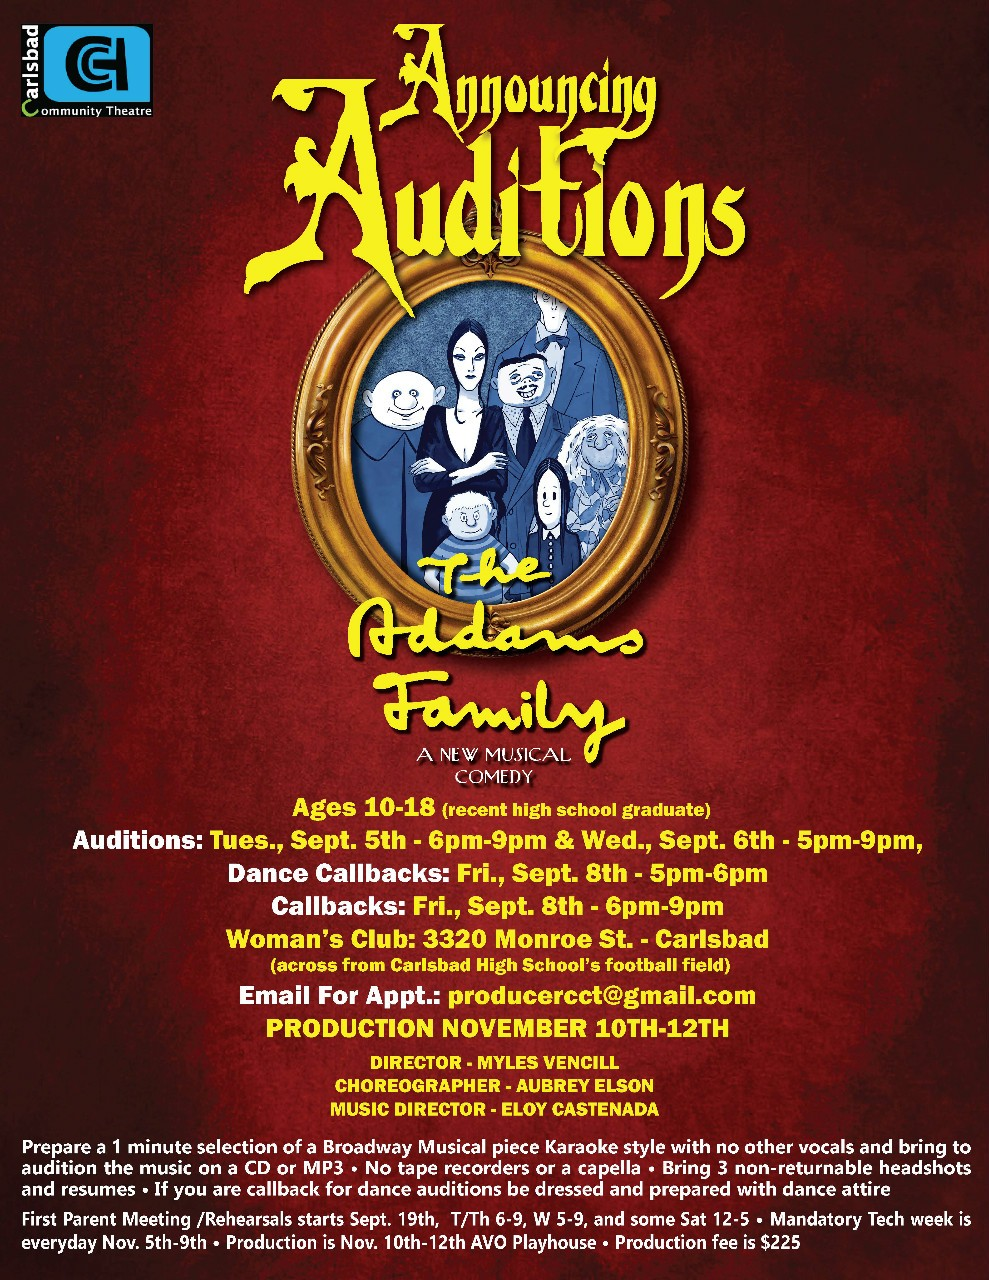 Download Audition Form Here